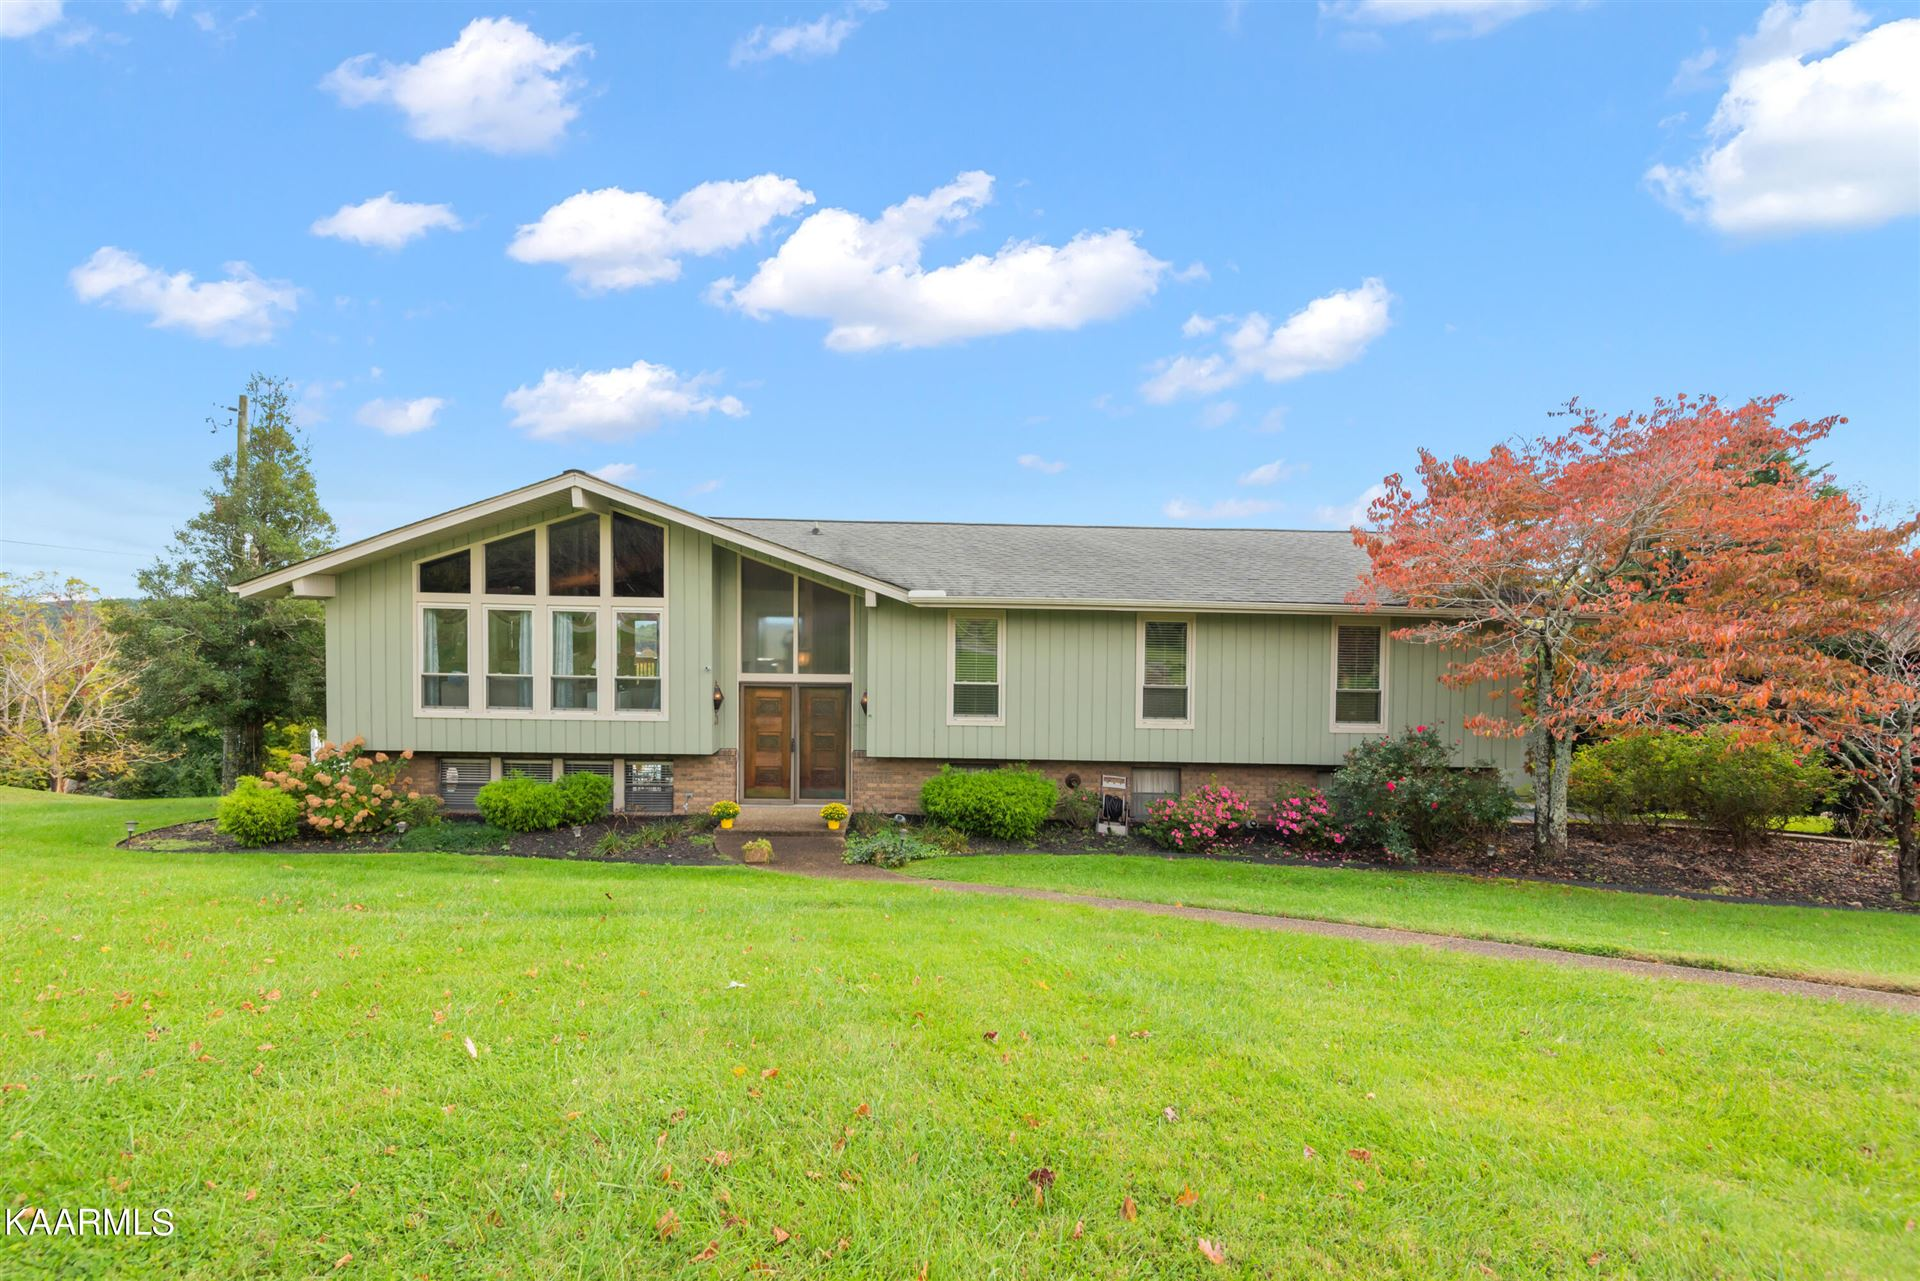 Photo of 6116 Top O Knox Drive, Knoxville, TN 37918 (MLS # 1171753)